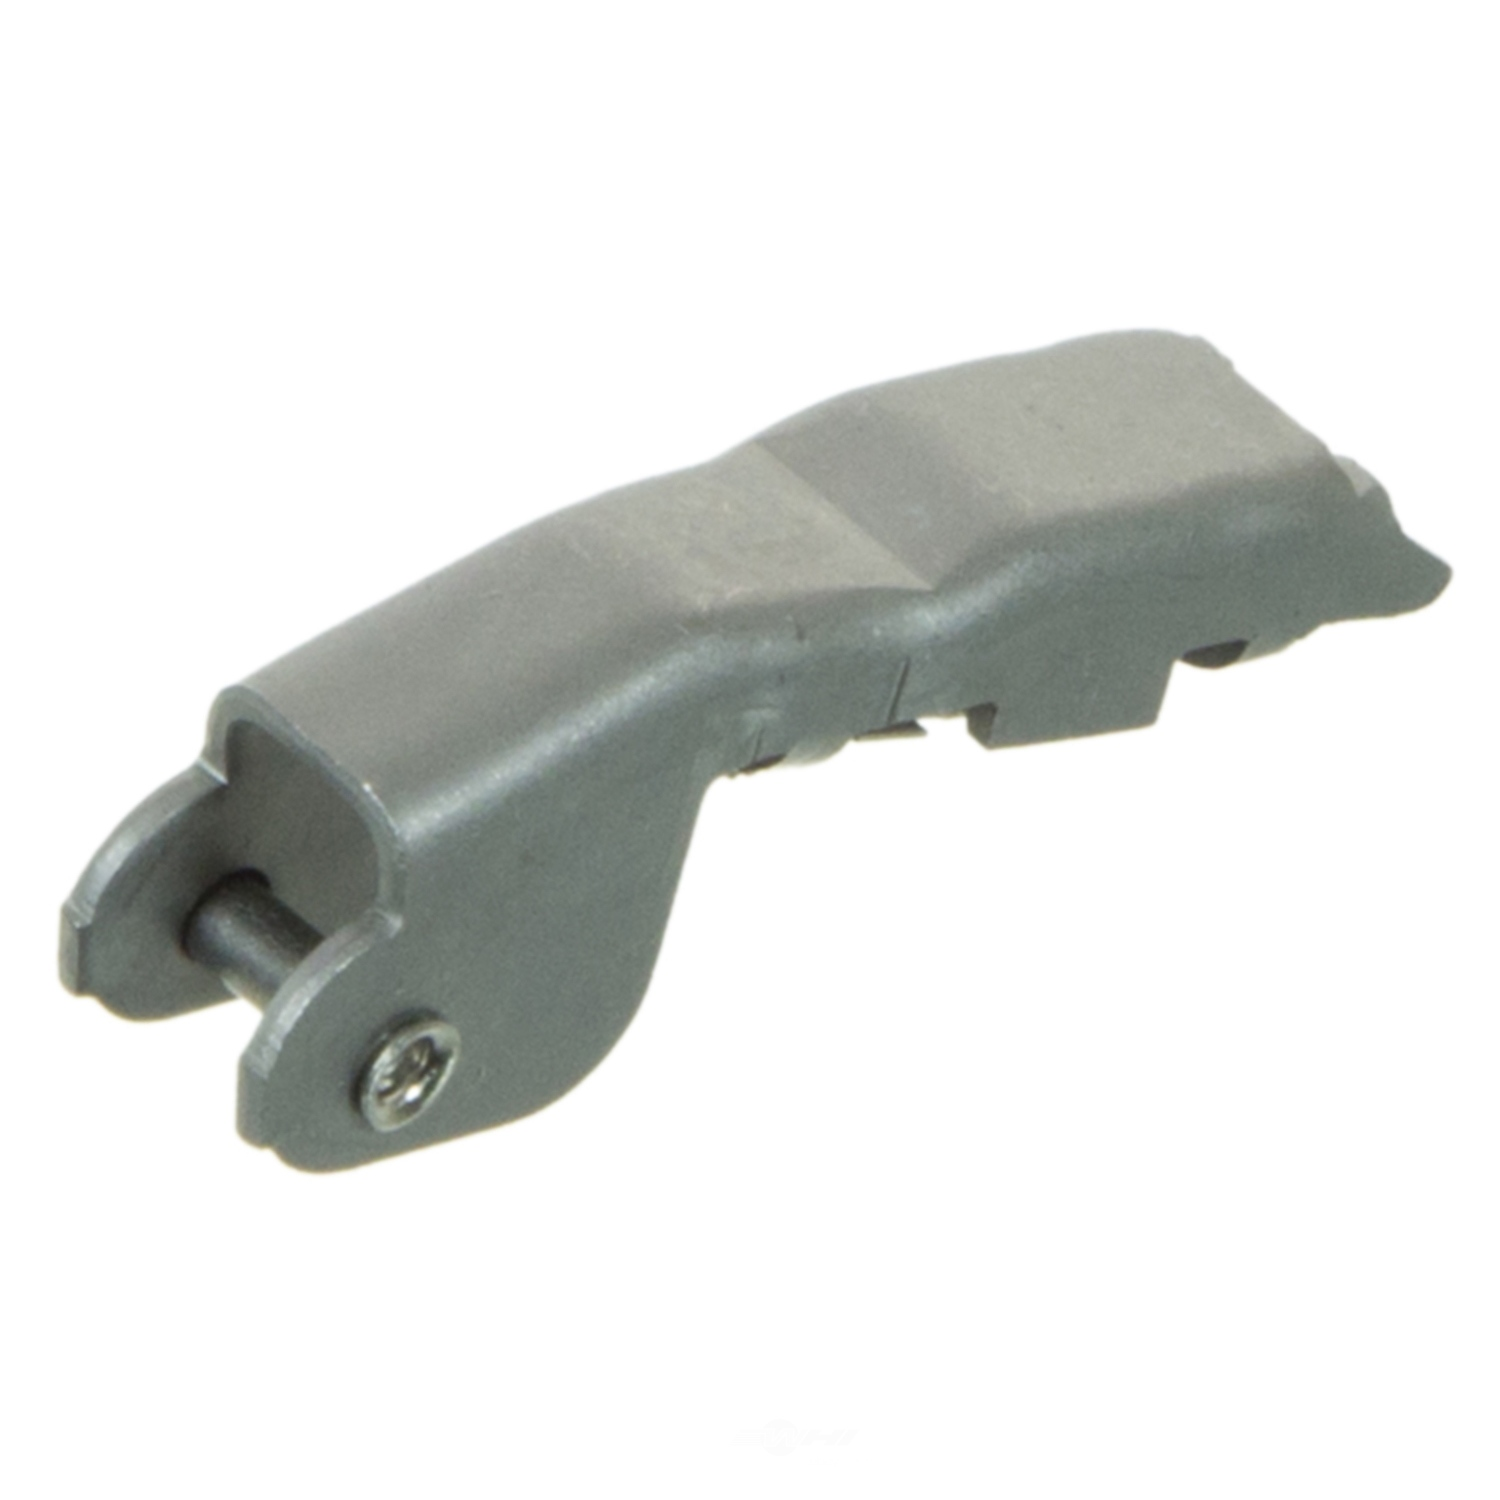 ANCO WIPER PRODUCTS - Wiper Blade Adapter - ANC 47-63